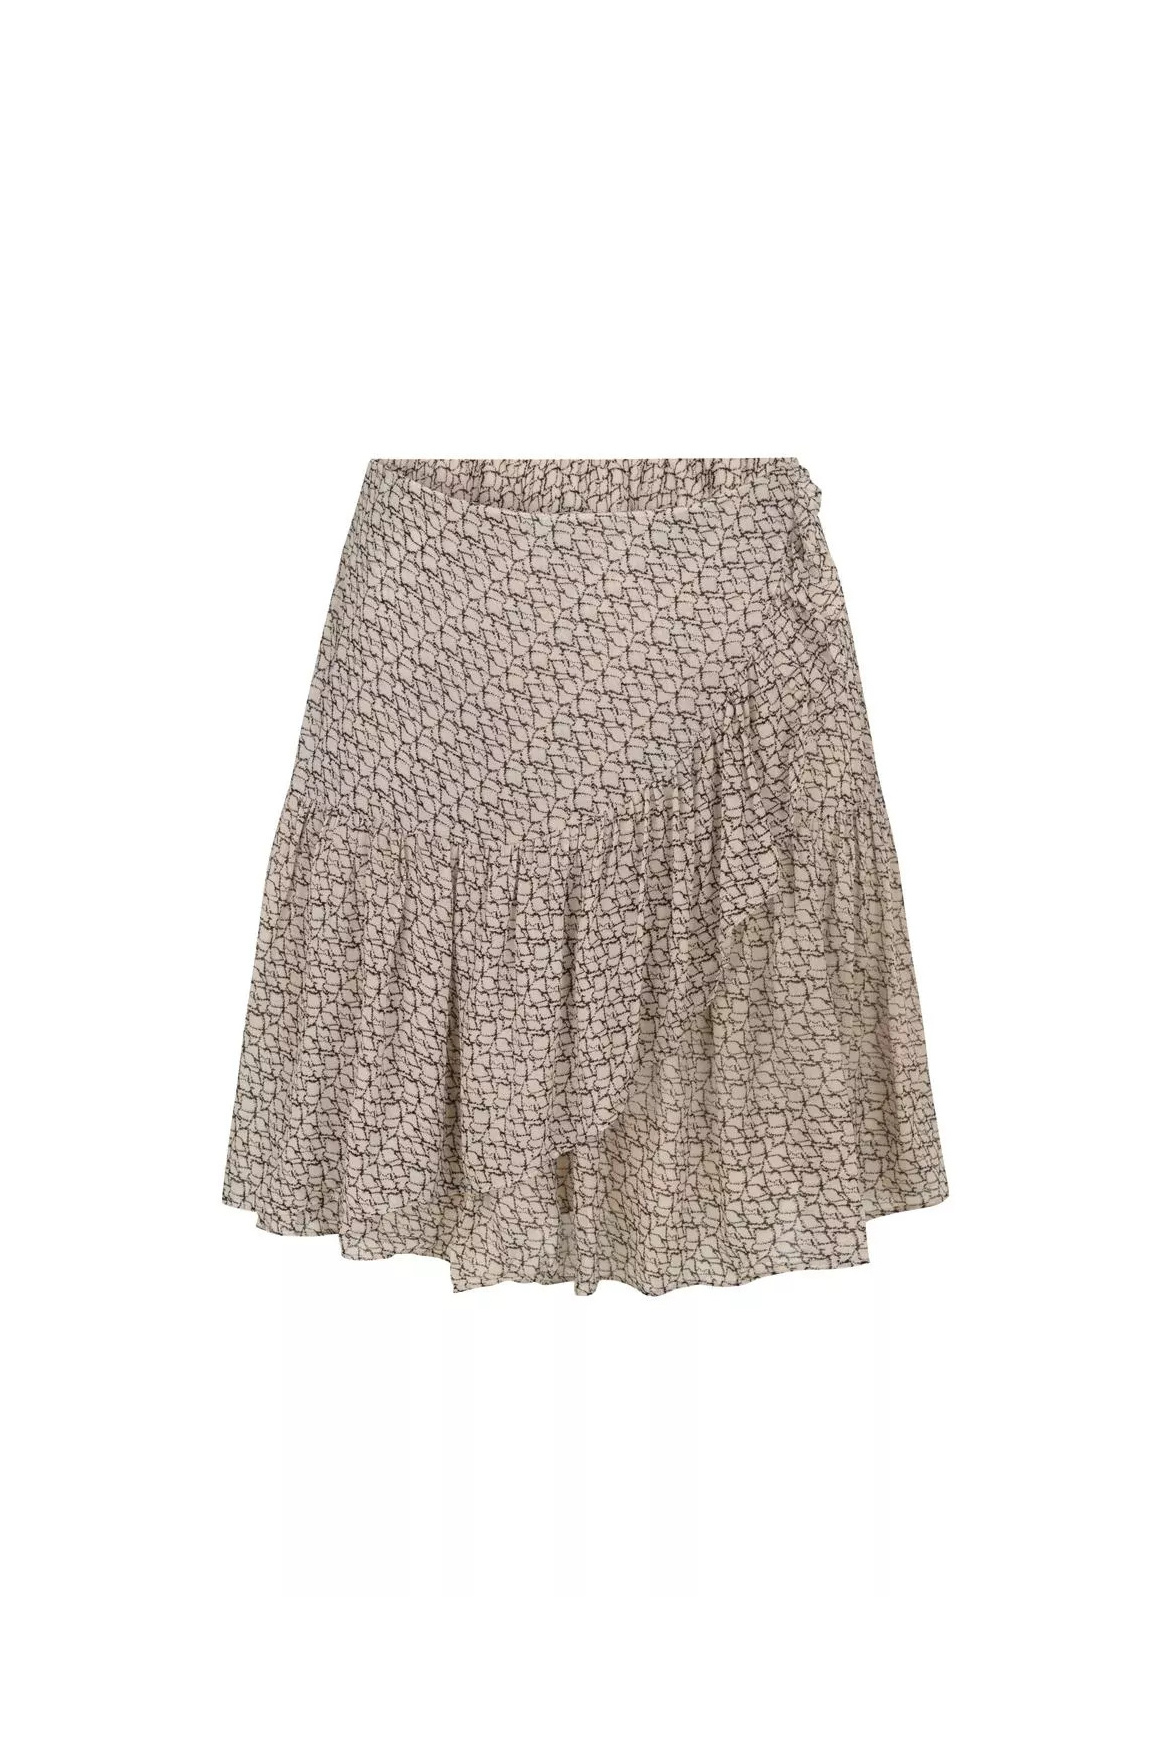 Lacing Skirt - Cement-1